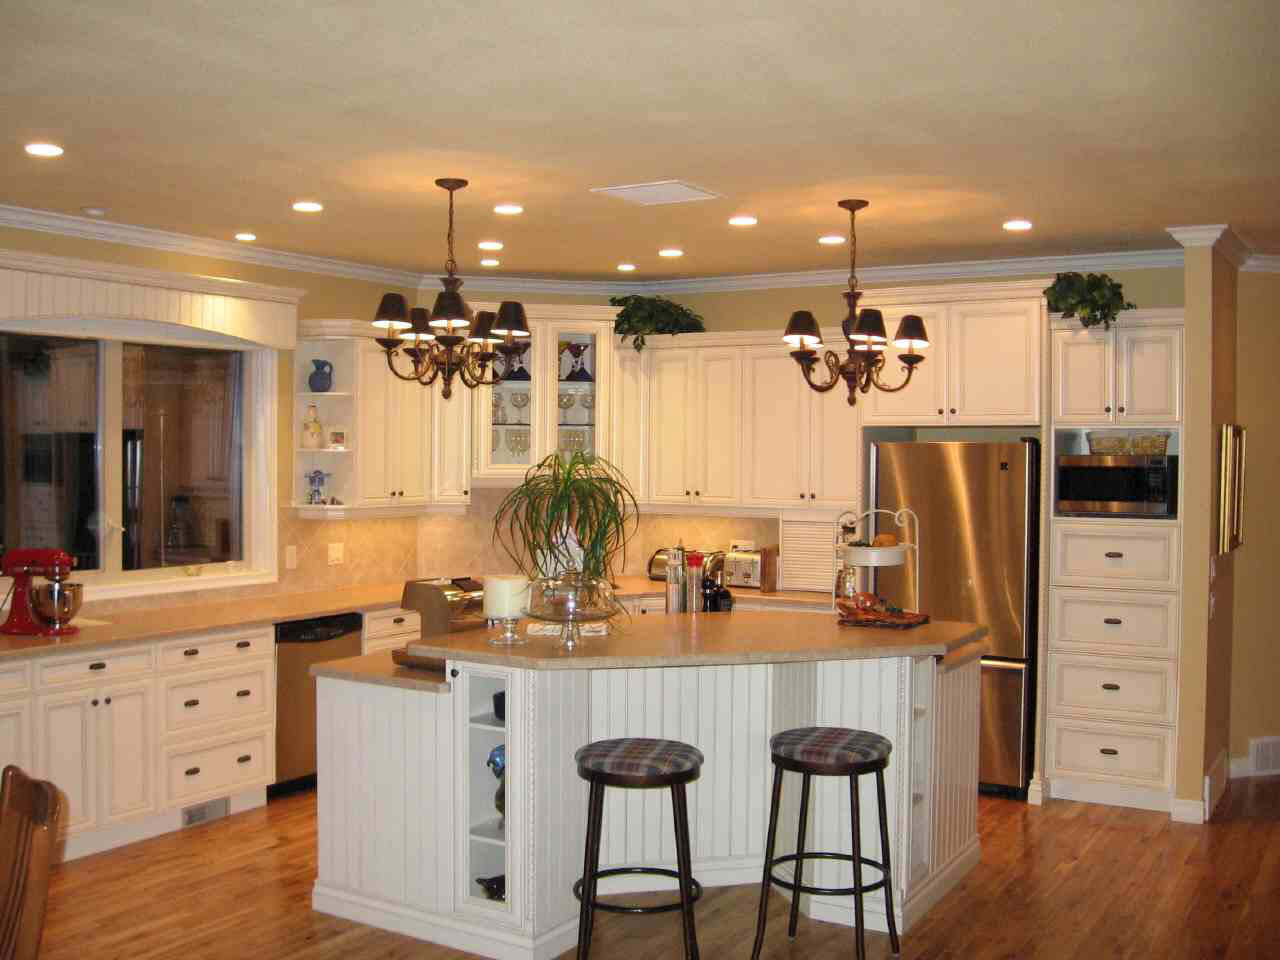 White kitchen island with stainless steel top photo - 2